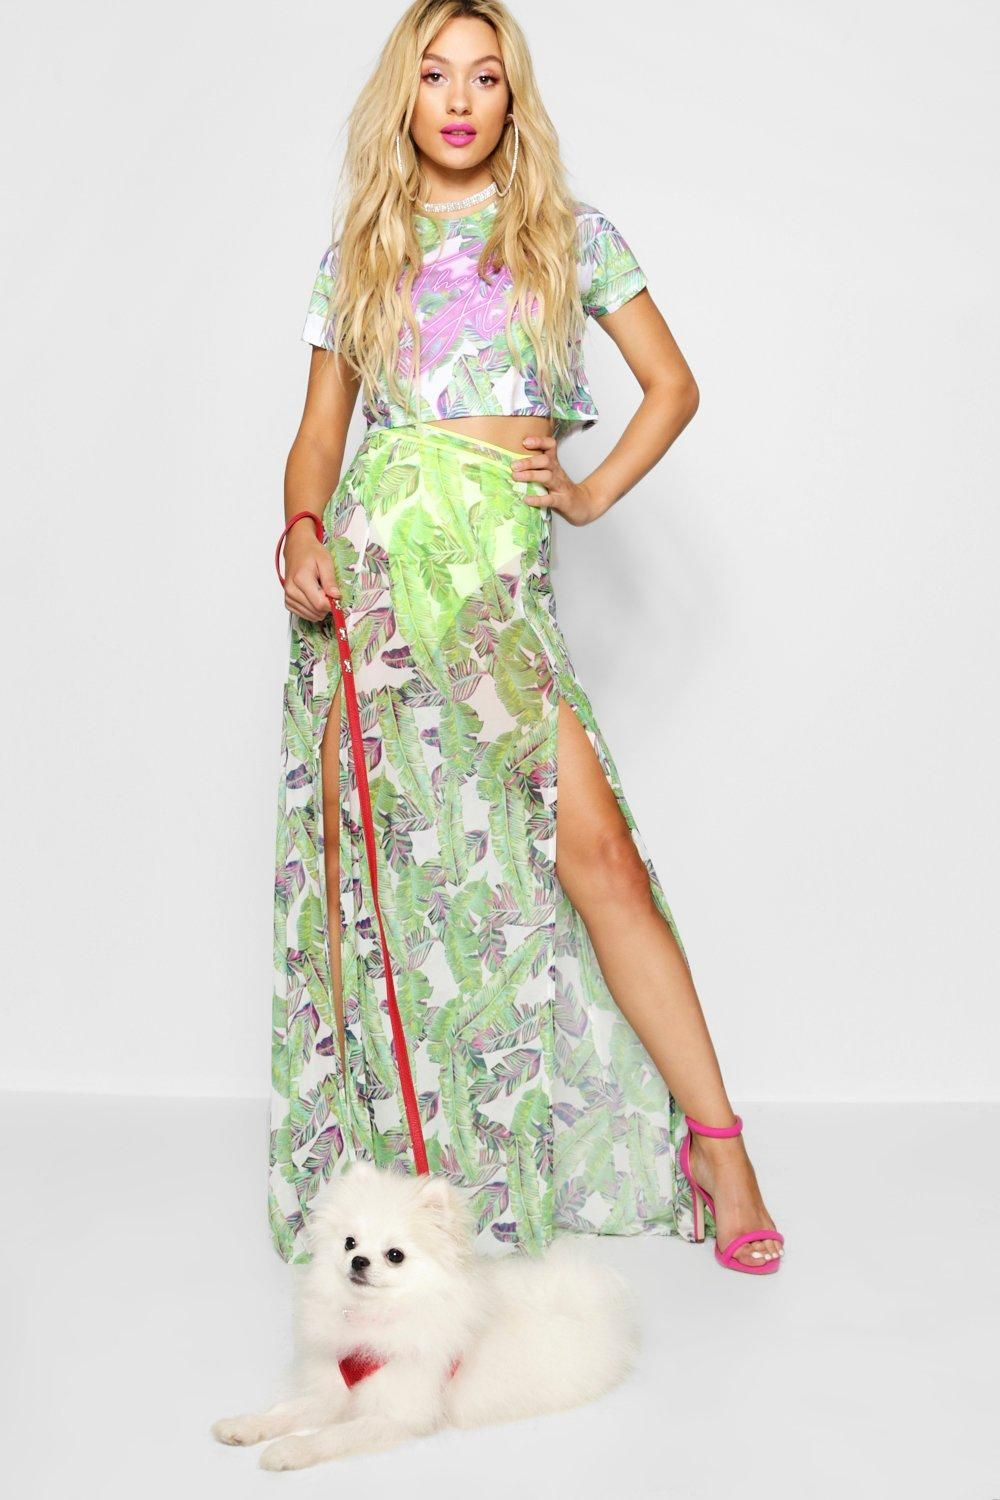 162ac9c2cd694 Product excluded from current promotions. ParisHiltonxboohoo. All ...